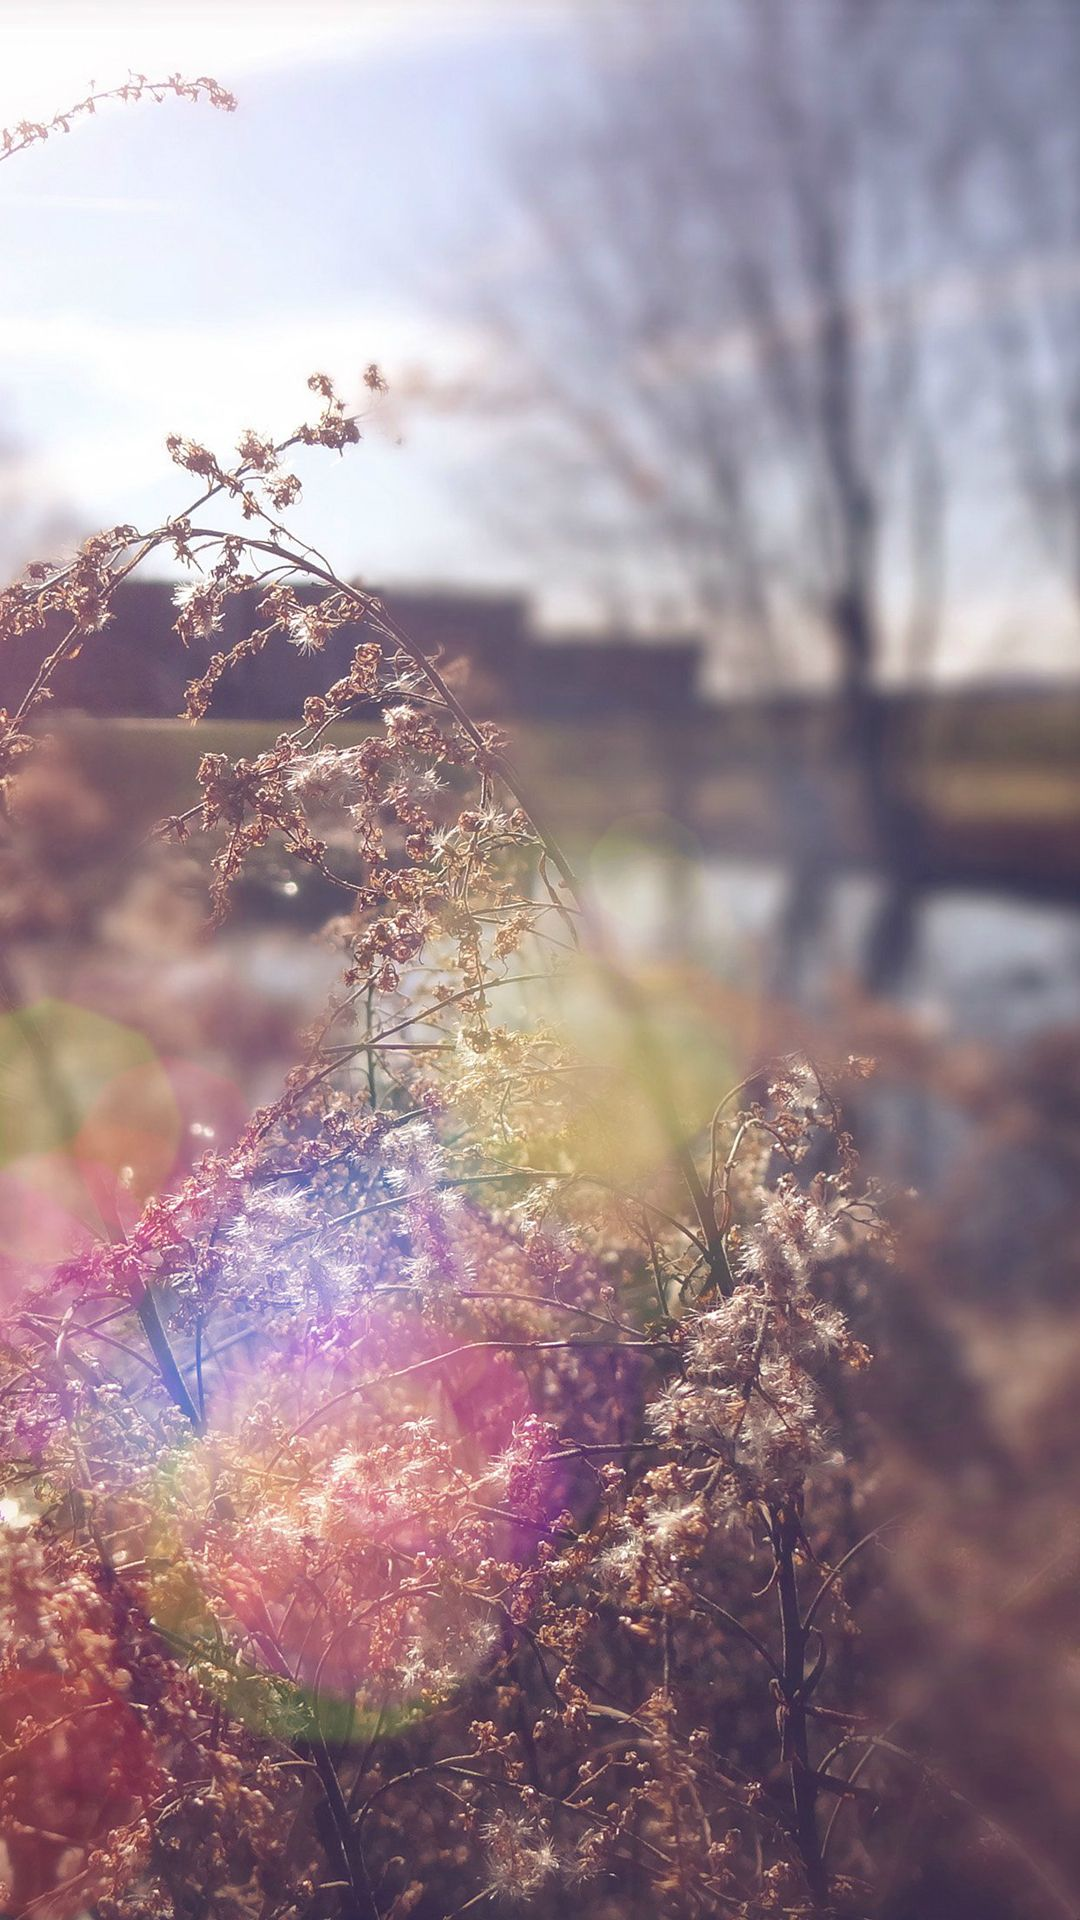 Sad Day Flower Nature Flare iPhone 7 wallpaper Best